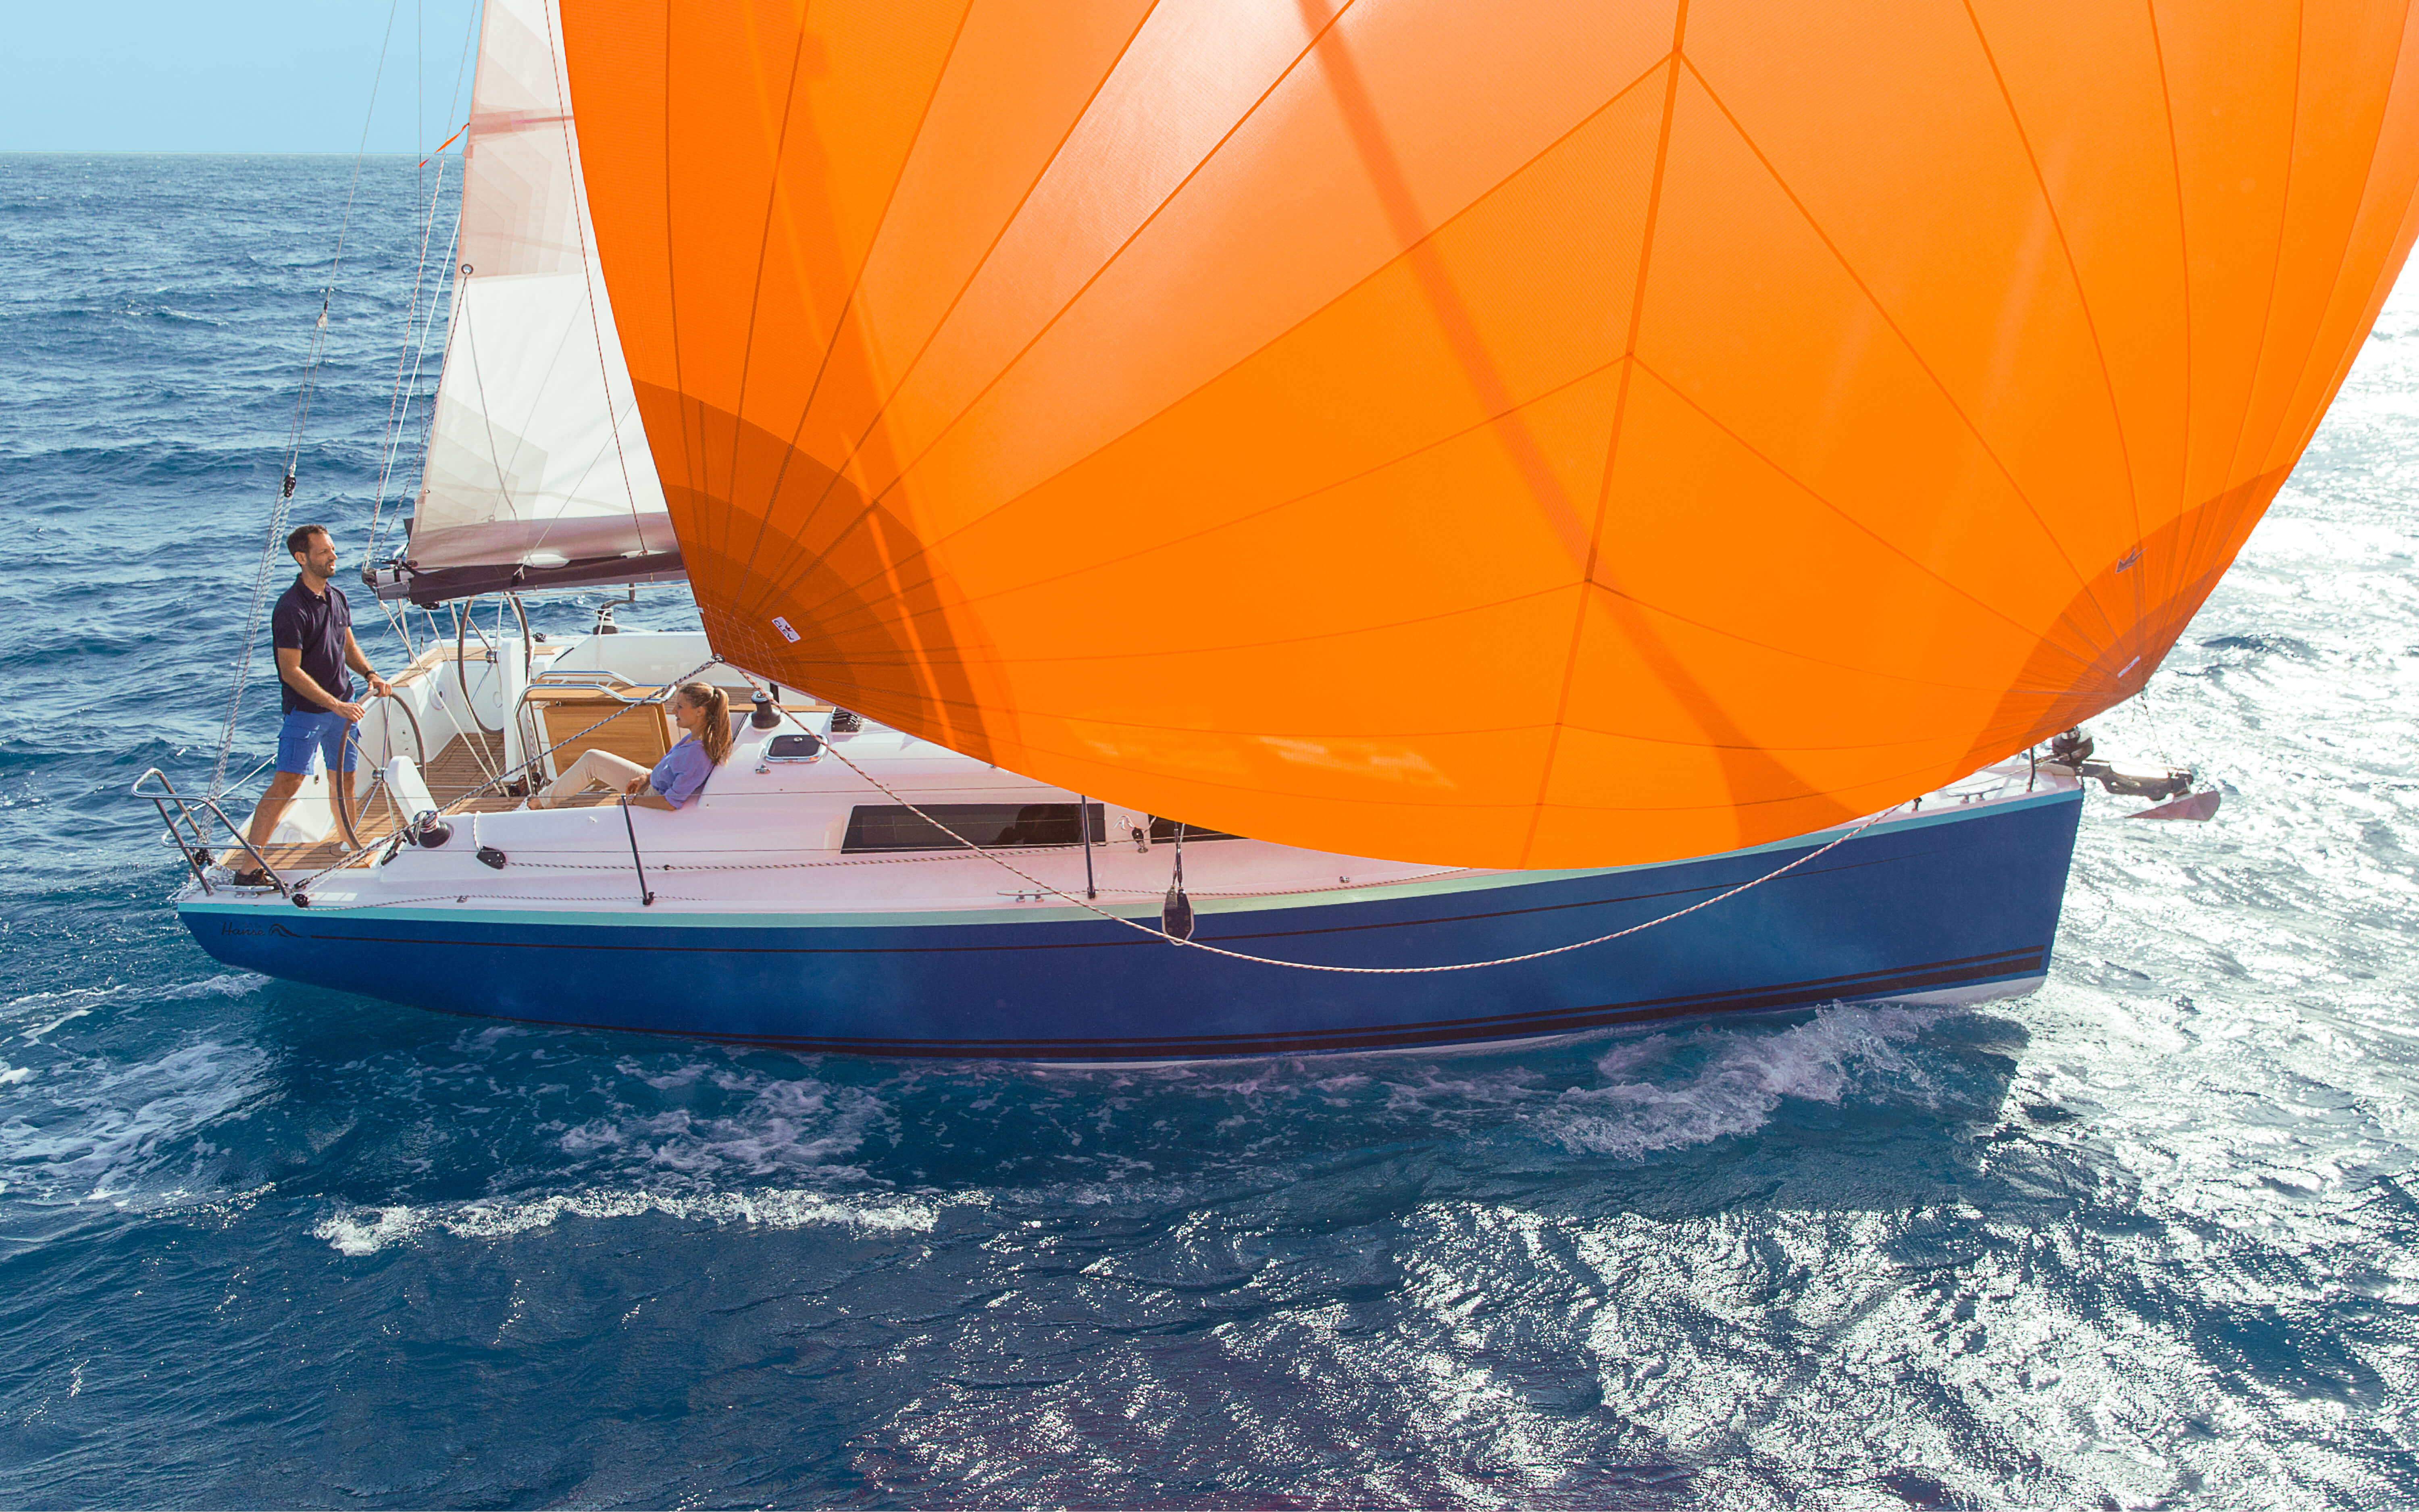 Hanse_315_2015_09_Exterior_Web_6.jpg | HANSE yachts amaze with their modern, functional design. Unique, puristic elegance meets exceptional performance from the pen of judel/vrolijk & co, the world's best and most experienced yacht designers. | Hanse